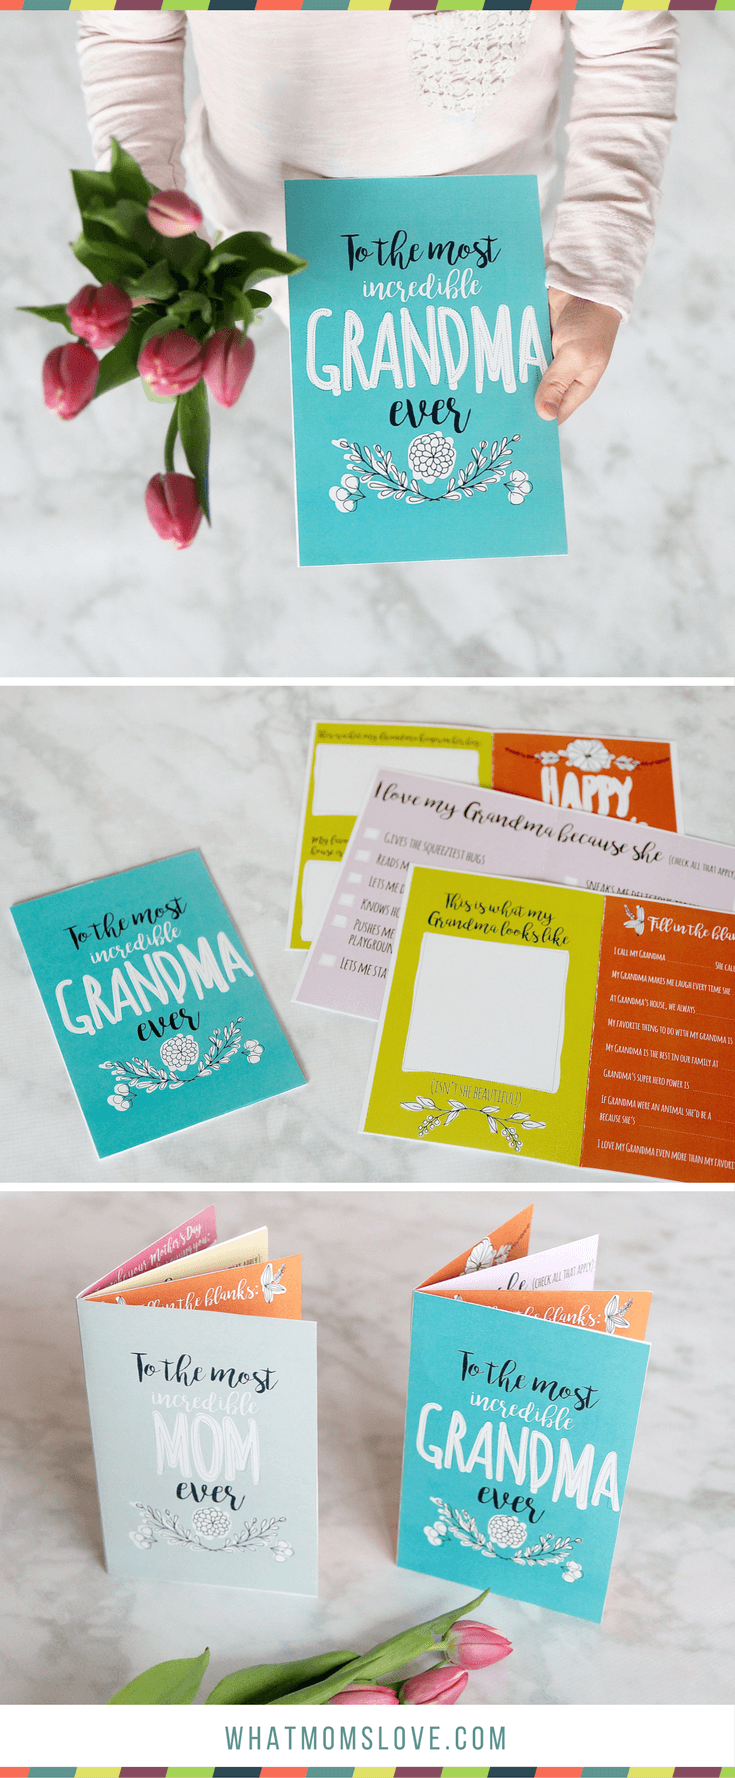 Free Printable Mothers Day Card | All About Mom or Grandma Book for kids to make - includes fun questionnaire, coupons for mom, and space to draw and color. The perfect DIY homemade card - super easy!